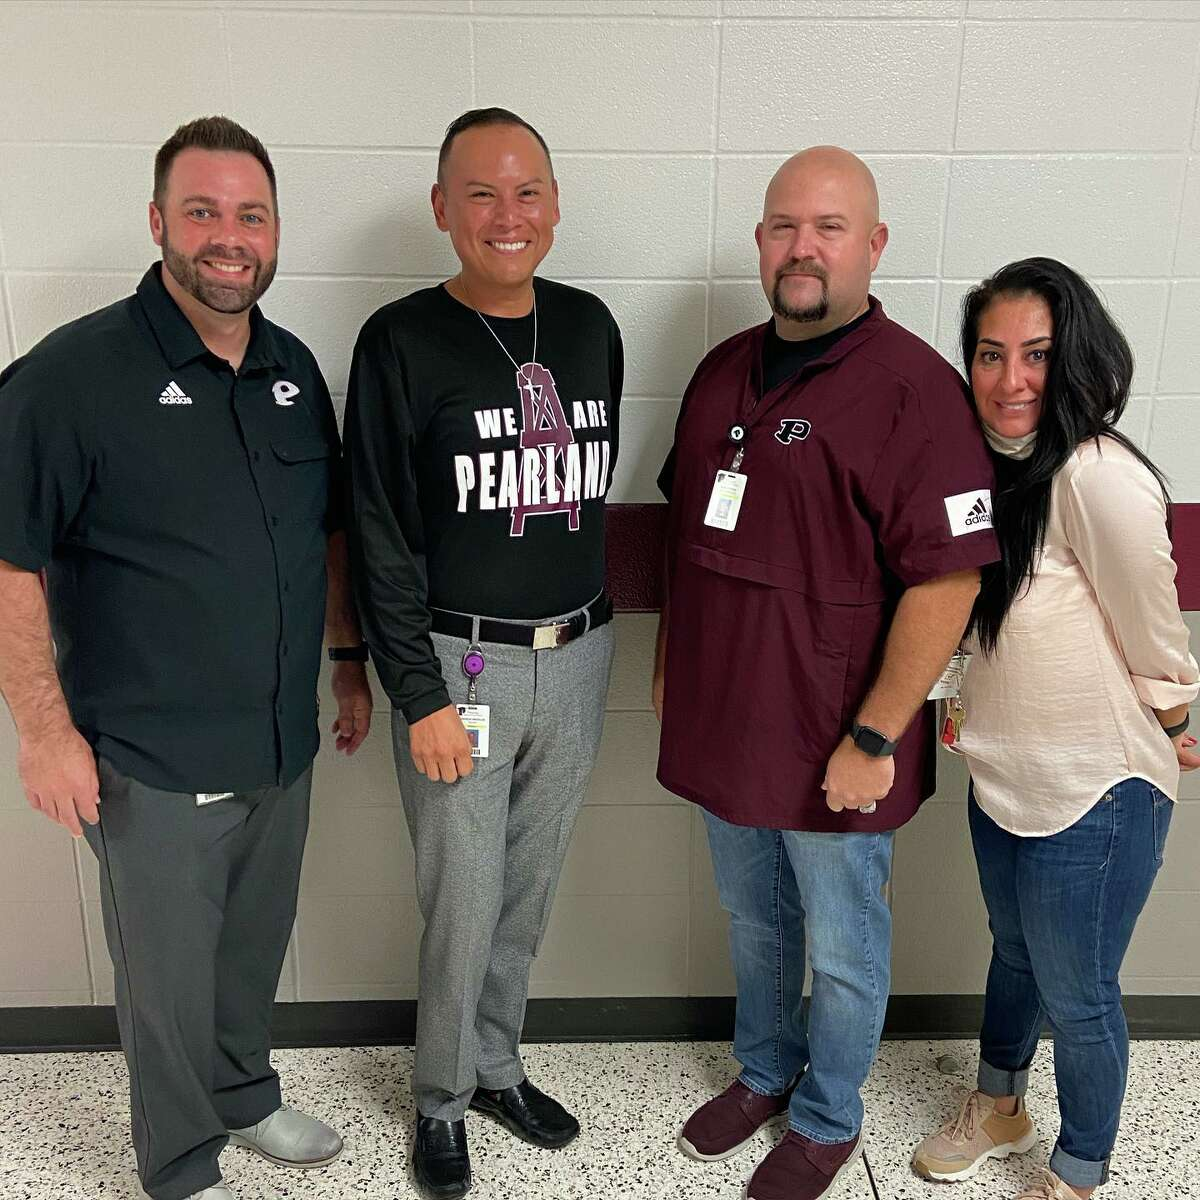 Pearland High School administrators congratulate Spanish teacher Cornelio Medellin, second from left, recent recipient of the Outstanding Hispanic Teacher award presented by the Brazoria County Chamber of Commerce. From left are Pearland High School Principal John Palombo, Medellin, Associate Principal Audie Johnson and Languages Other Than English department head Angelica Millan.